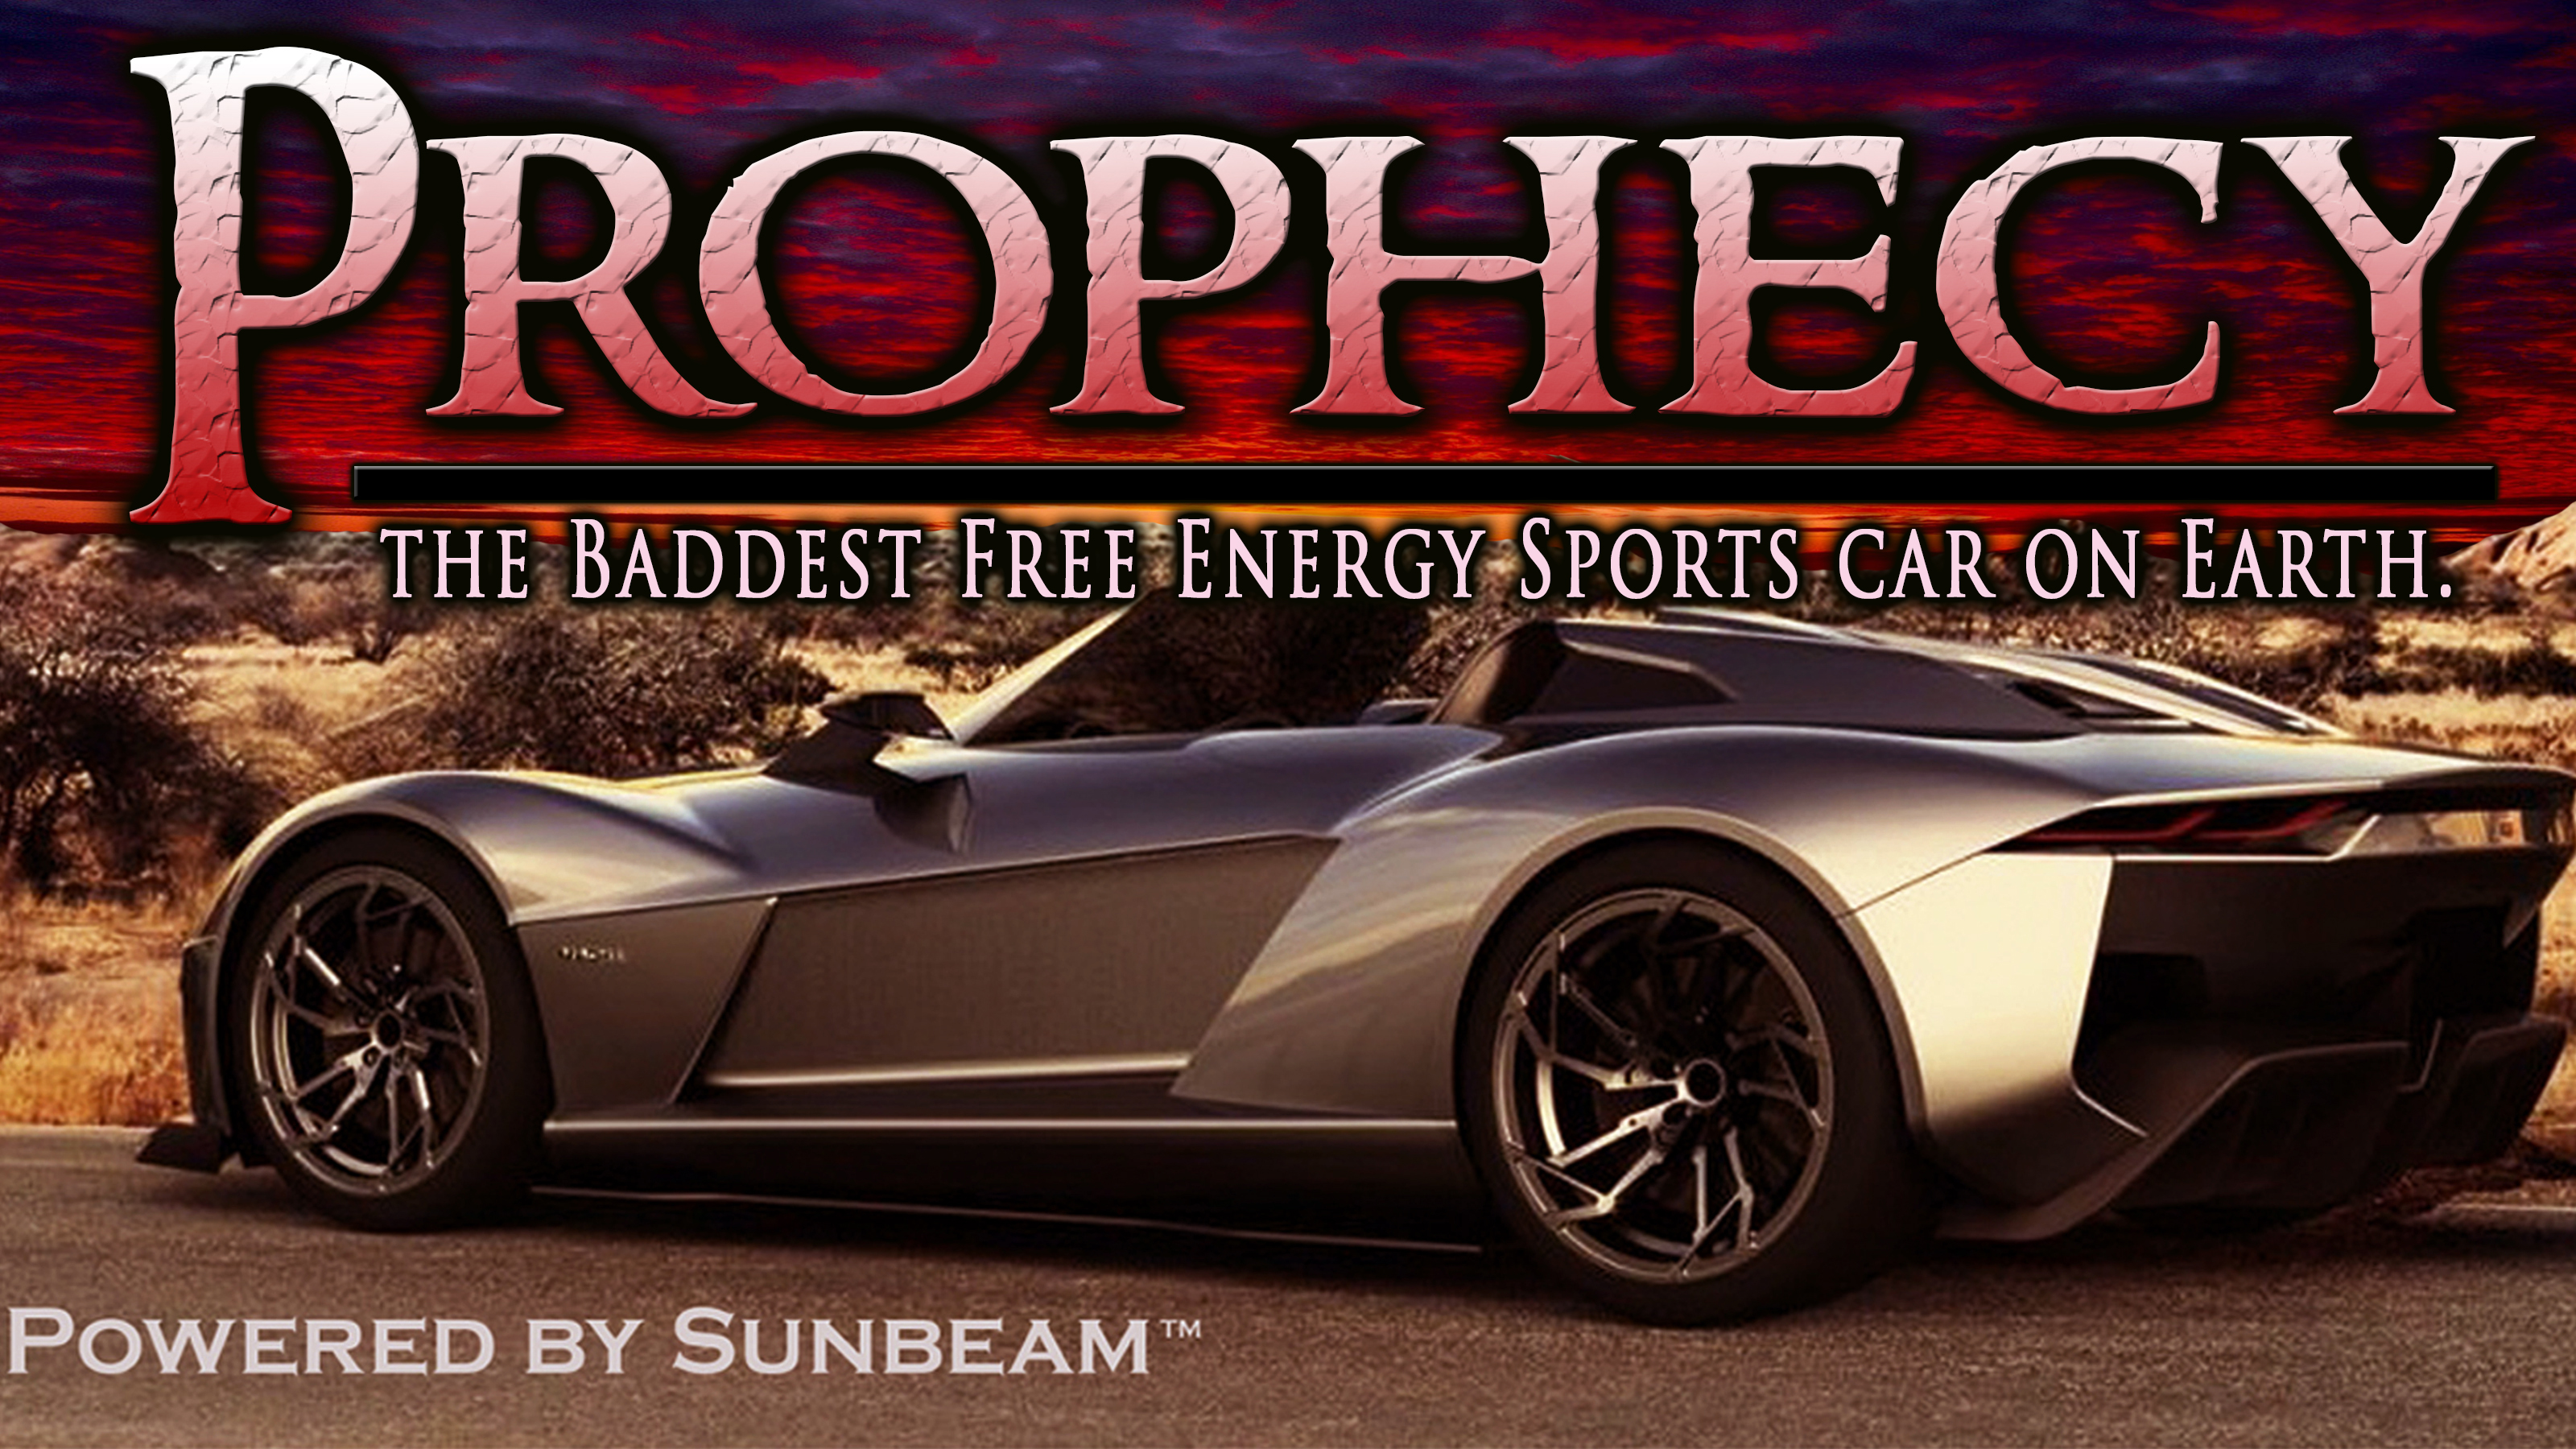 All sunbeam car company models list of sunbeam car company cars - Note The Sunbeam Sports Car Above Is Not Called Prophecy Image Goes With Article And Refers To Energy Solutions Being A Part Of Future Prophecy